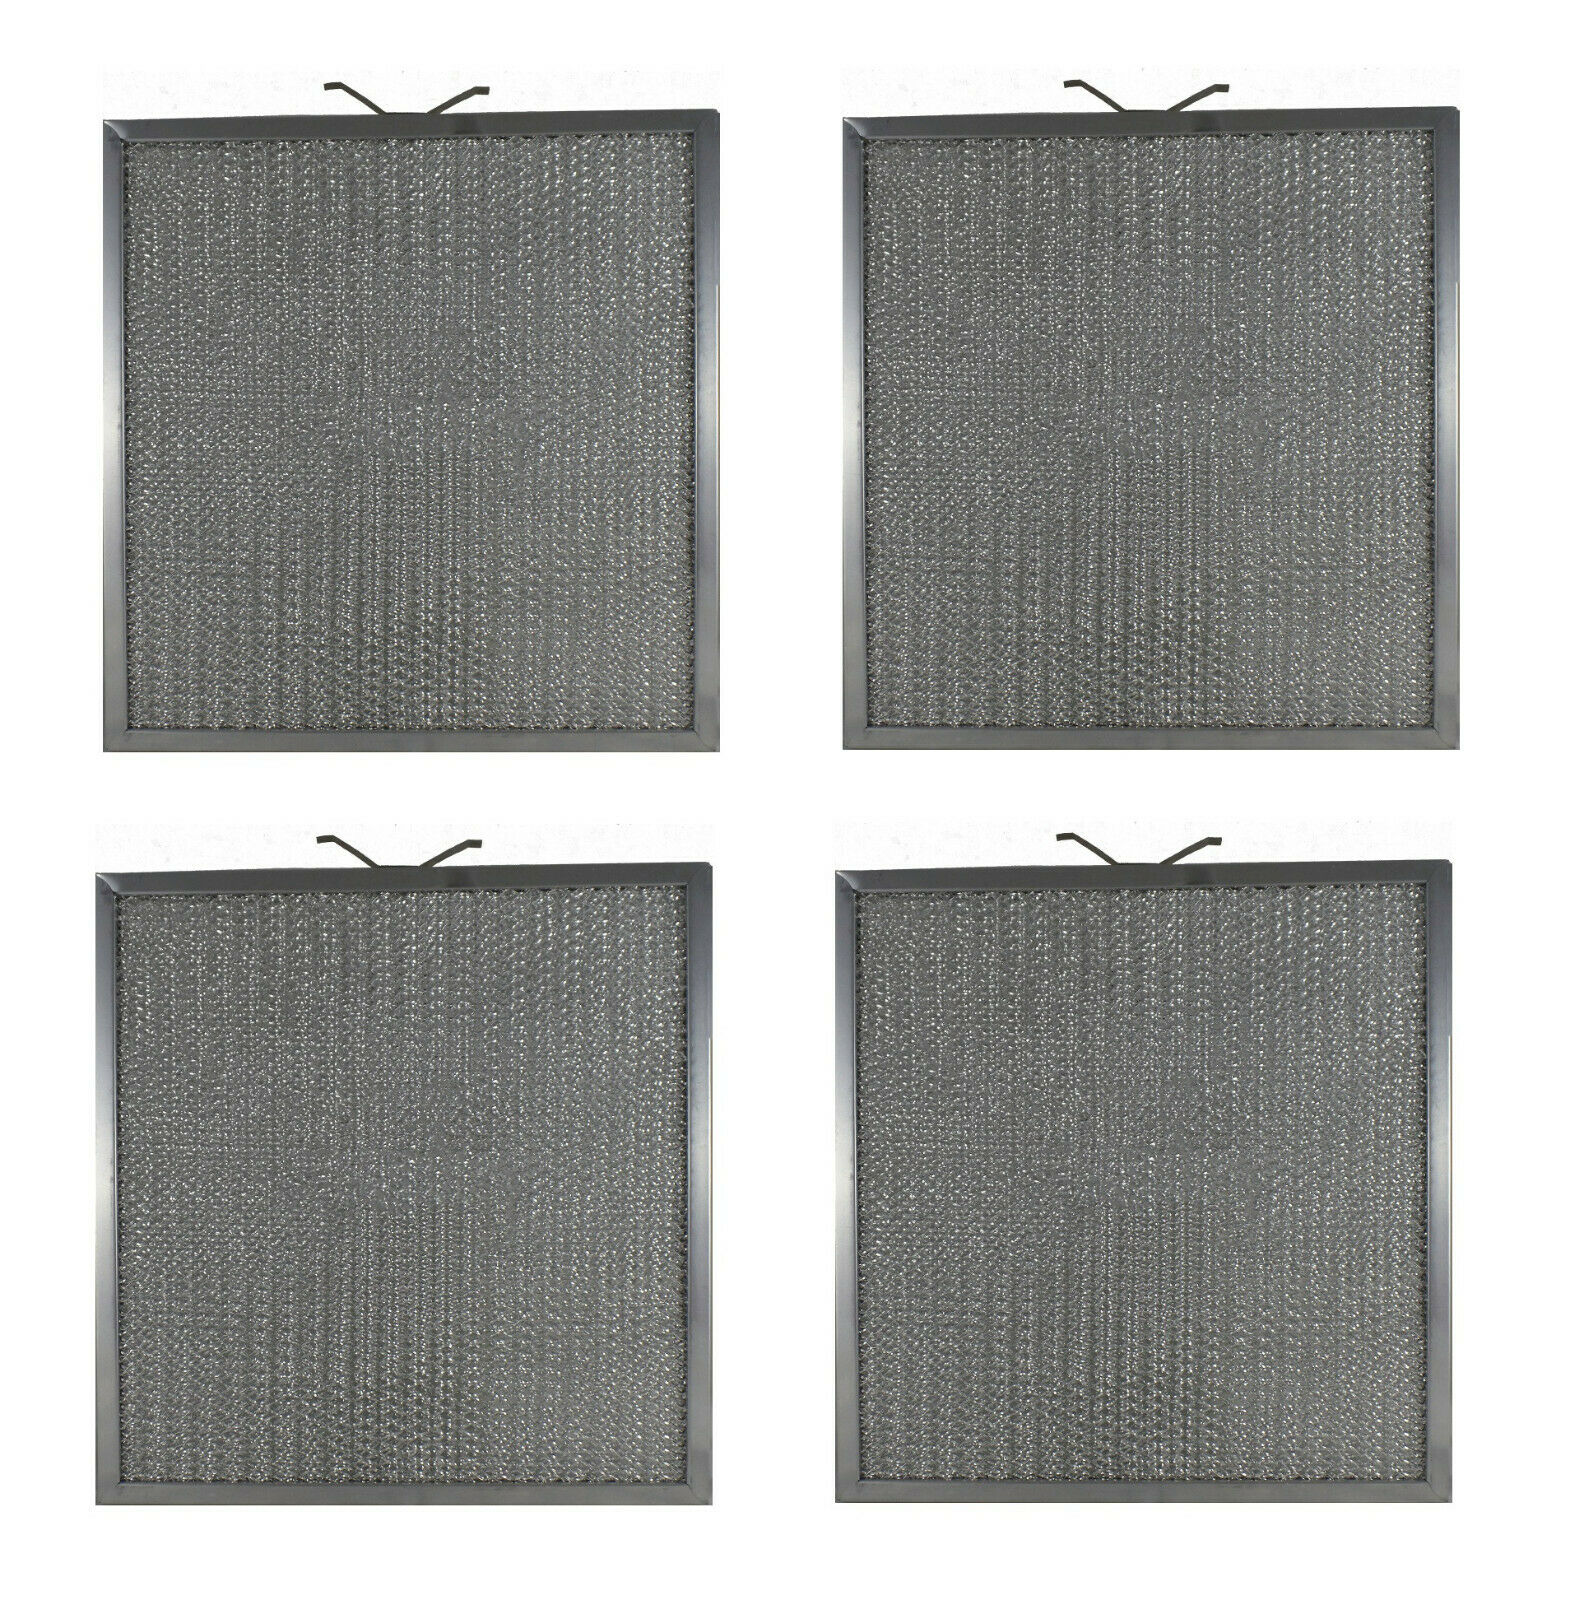 4 PACK Filters for Broan QT2000 Nutone WA6500 Vent Hood 9901